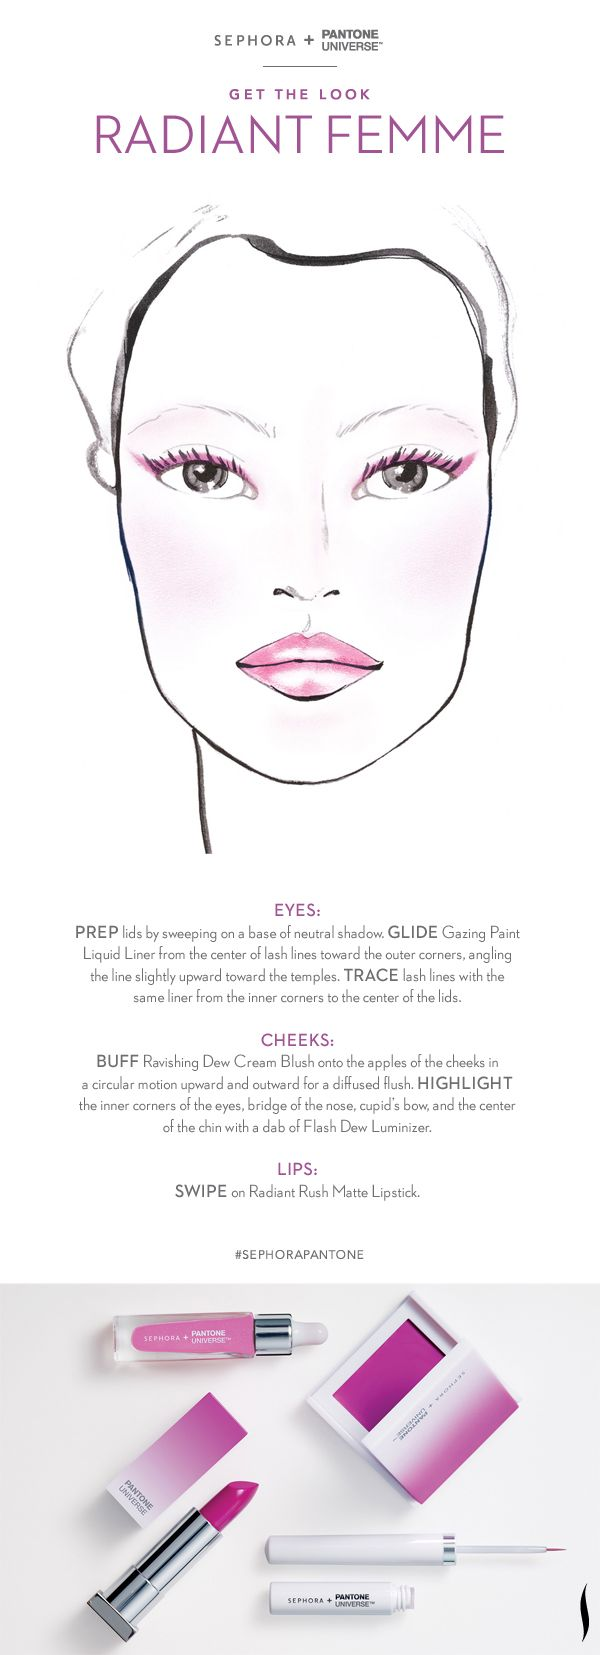 Soft shading meets graphic edge in this lush take on modern femininity. Look created with the #Sephora + @PANTONE COLOR COLOR OF THE YEAR Collection. #RadiantOrchid #howto #makeuptutorial #SephoraPantone